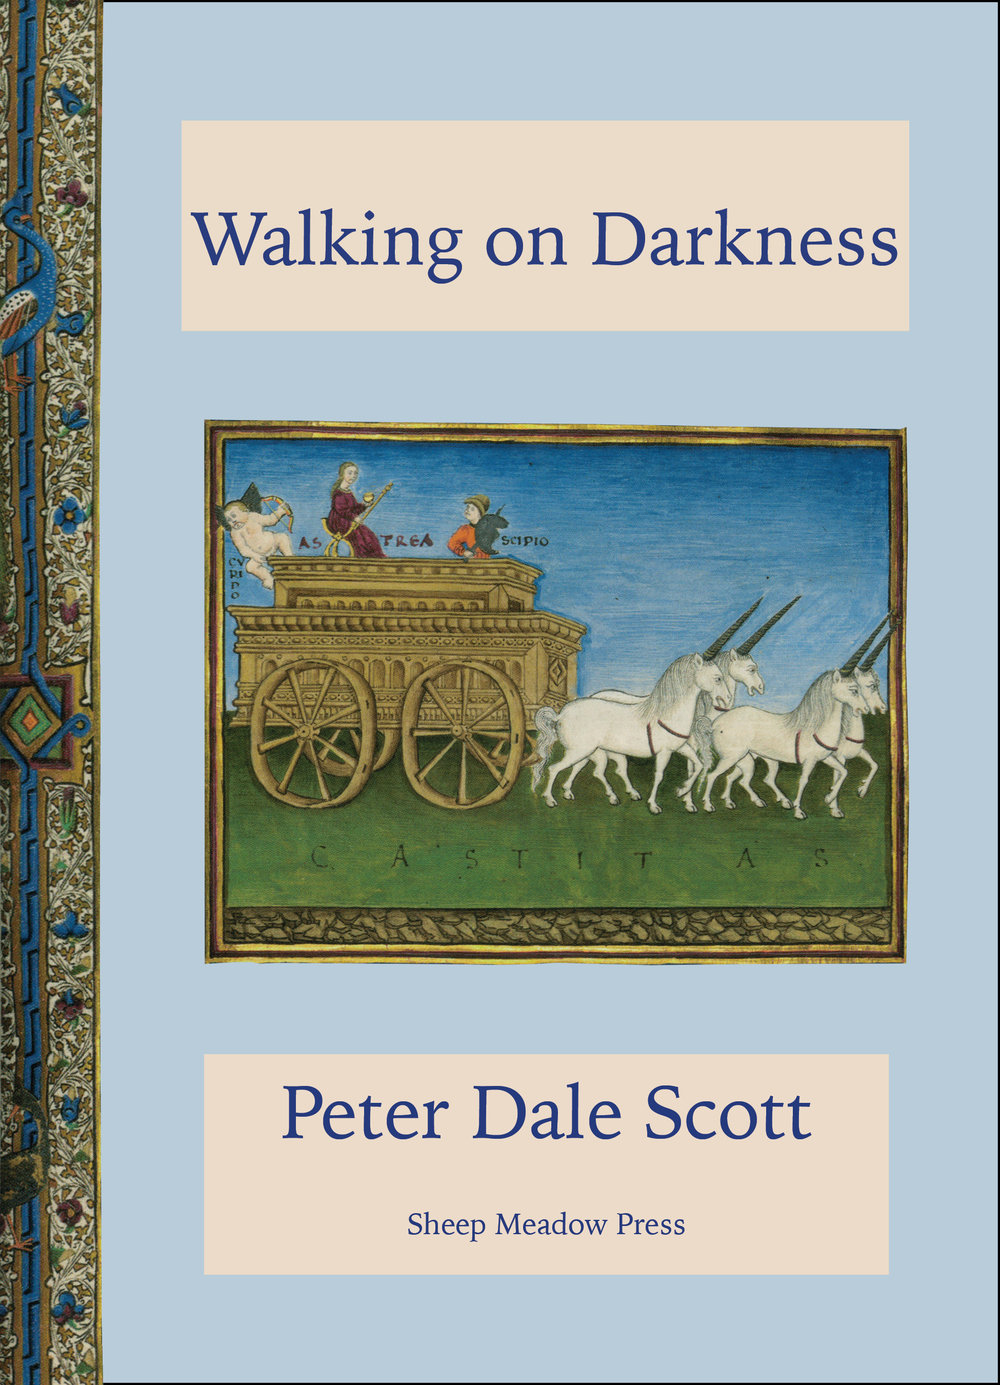 Peter Dale Scott Cover.jpg